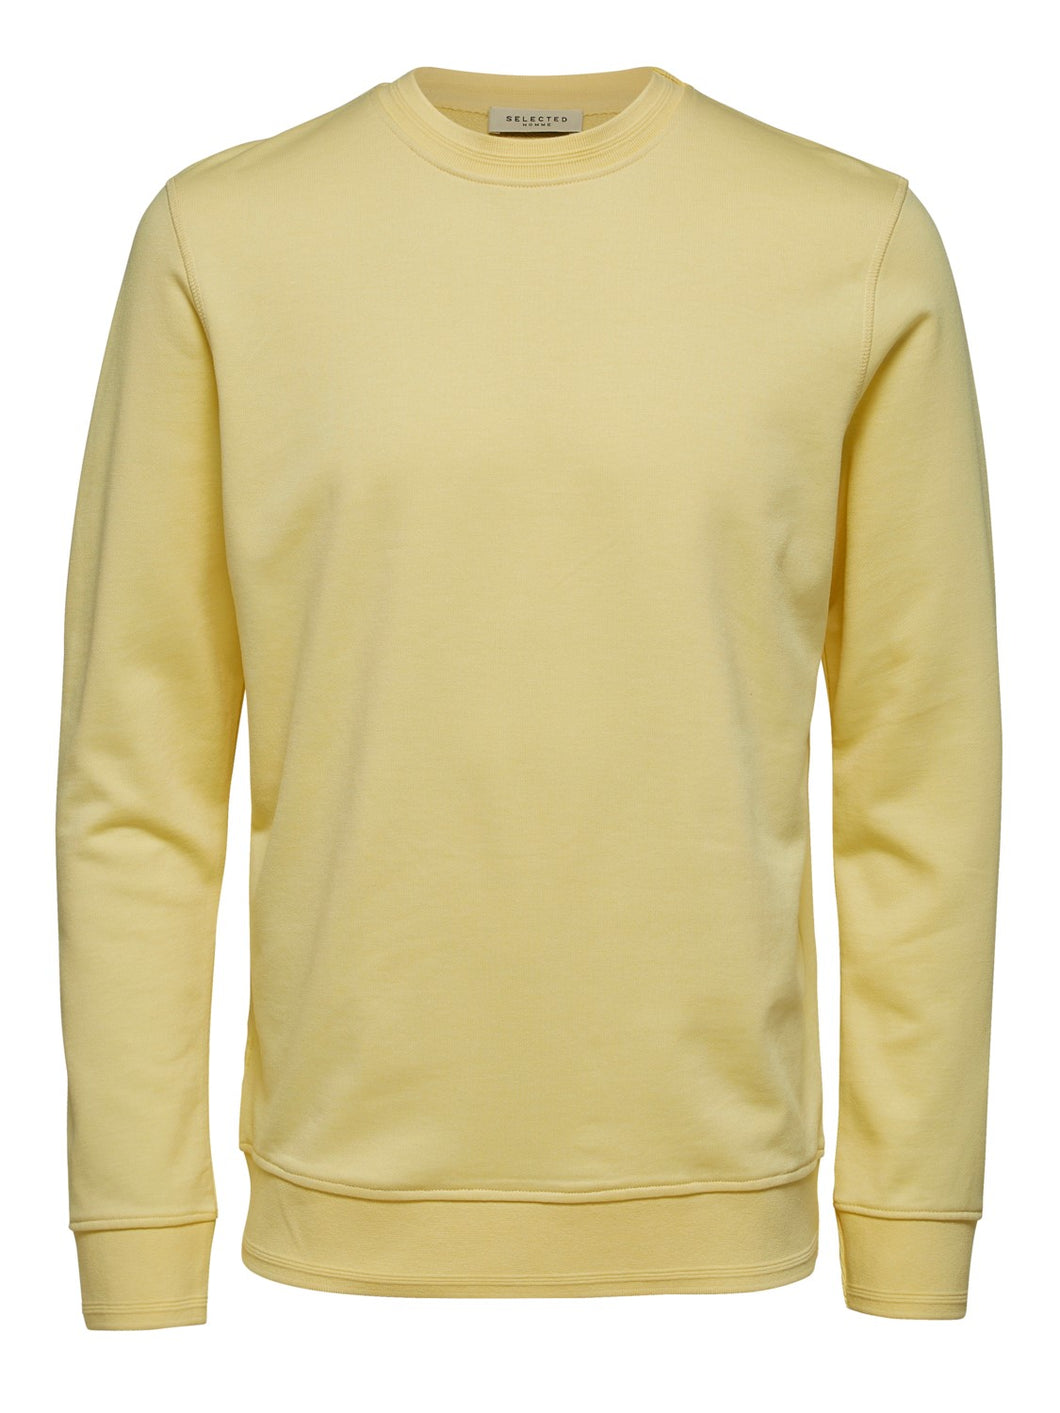 Selected Homme Bono Crew Sweatshirt Lemon